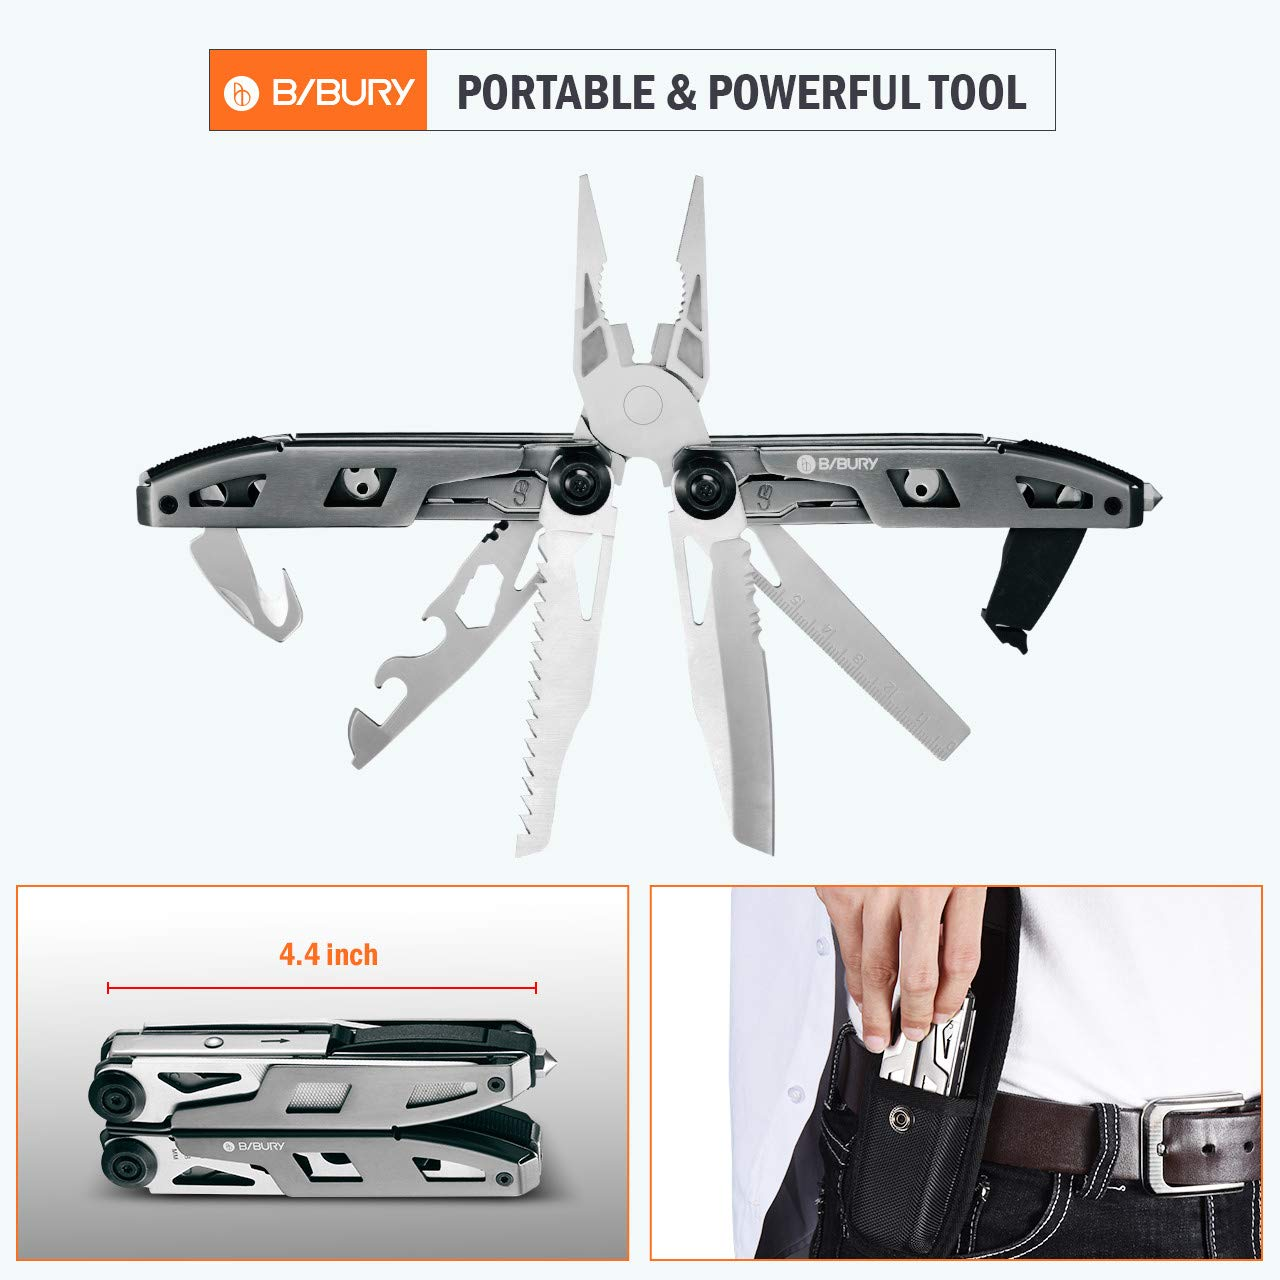 Multitool Pliers,Titanium 18-in-1 Multi-Purpose Pocket Knife Pliers Kit, Durable Stainless Steel Multi-Plier Multi-Tool for Survival, Camping, Hunting, Fishing and Hiking (Titanium 18 in 1) by Bibury (Image #7)